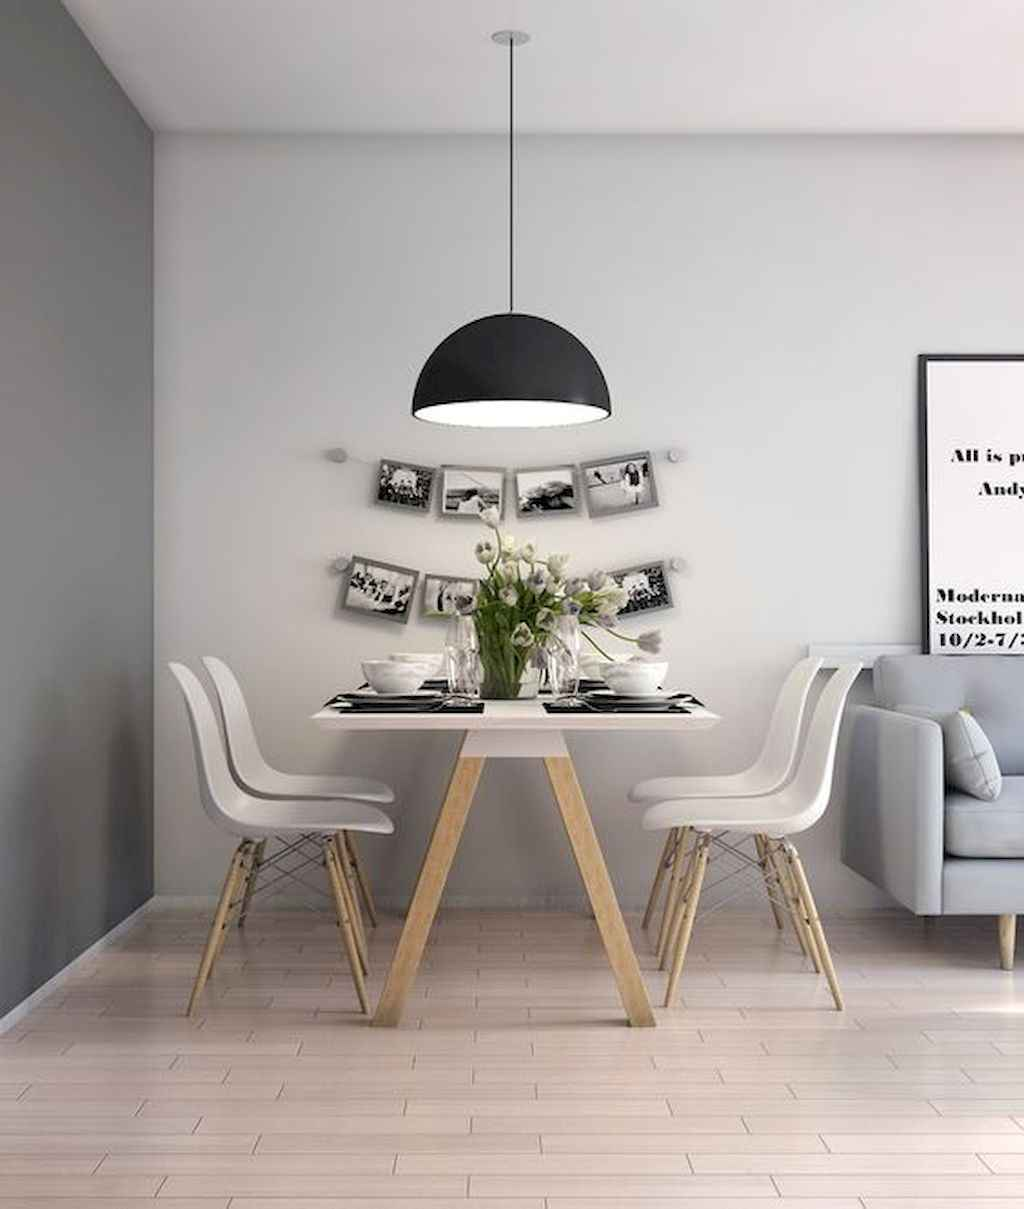 Awesome minimalist dining room decorating ideas (52)